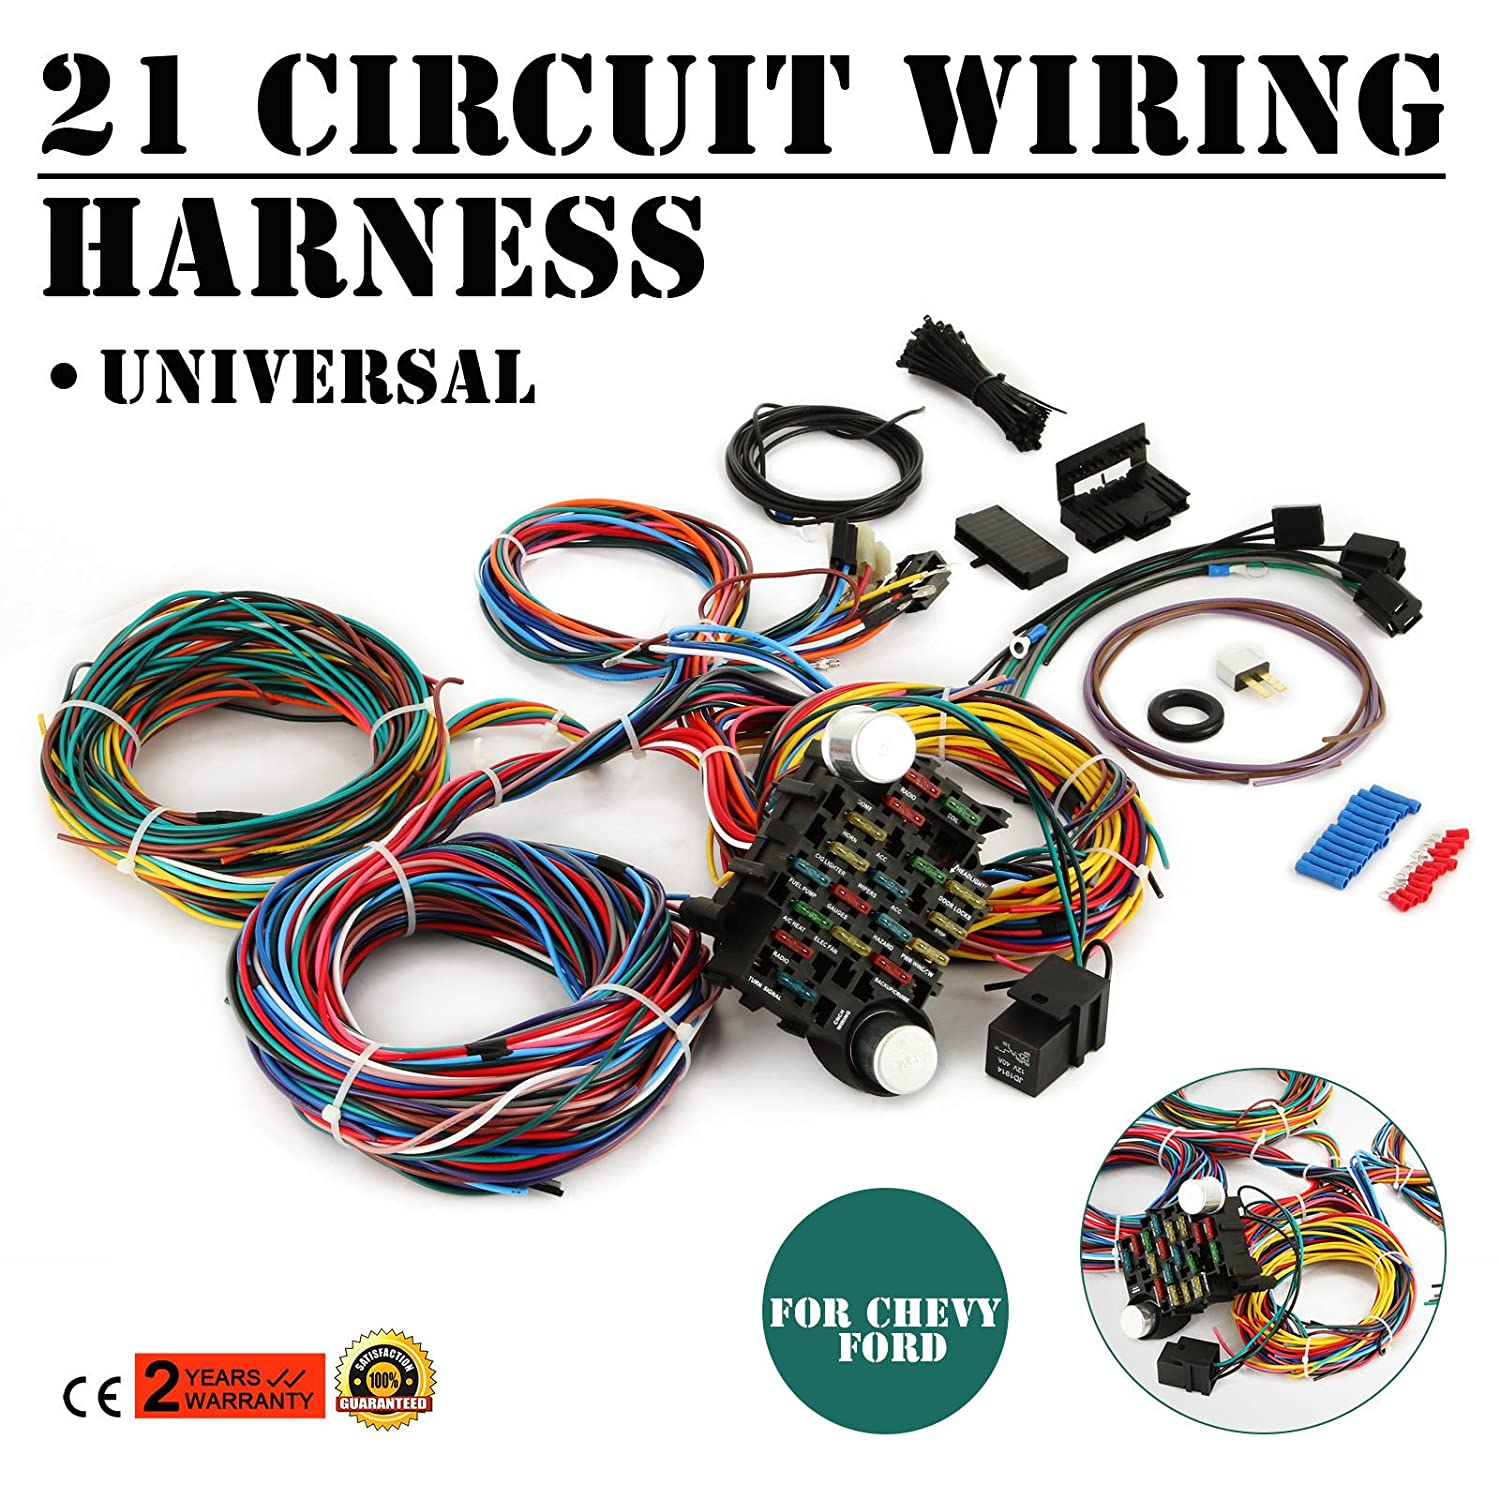 amazon com: mophorn 21 circuit wiring harness kit long wires wiring harness  21 standard color wiring harness kit for chevy mopar hotrods ford chrysler